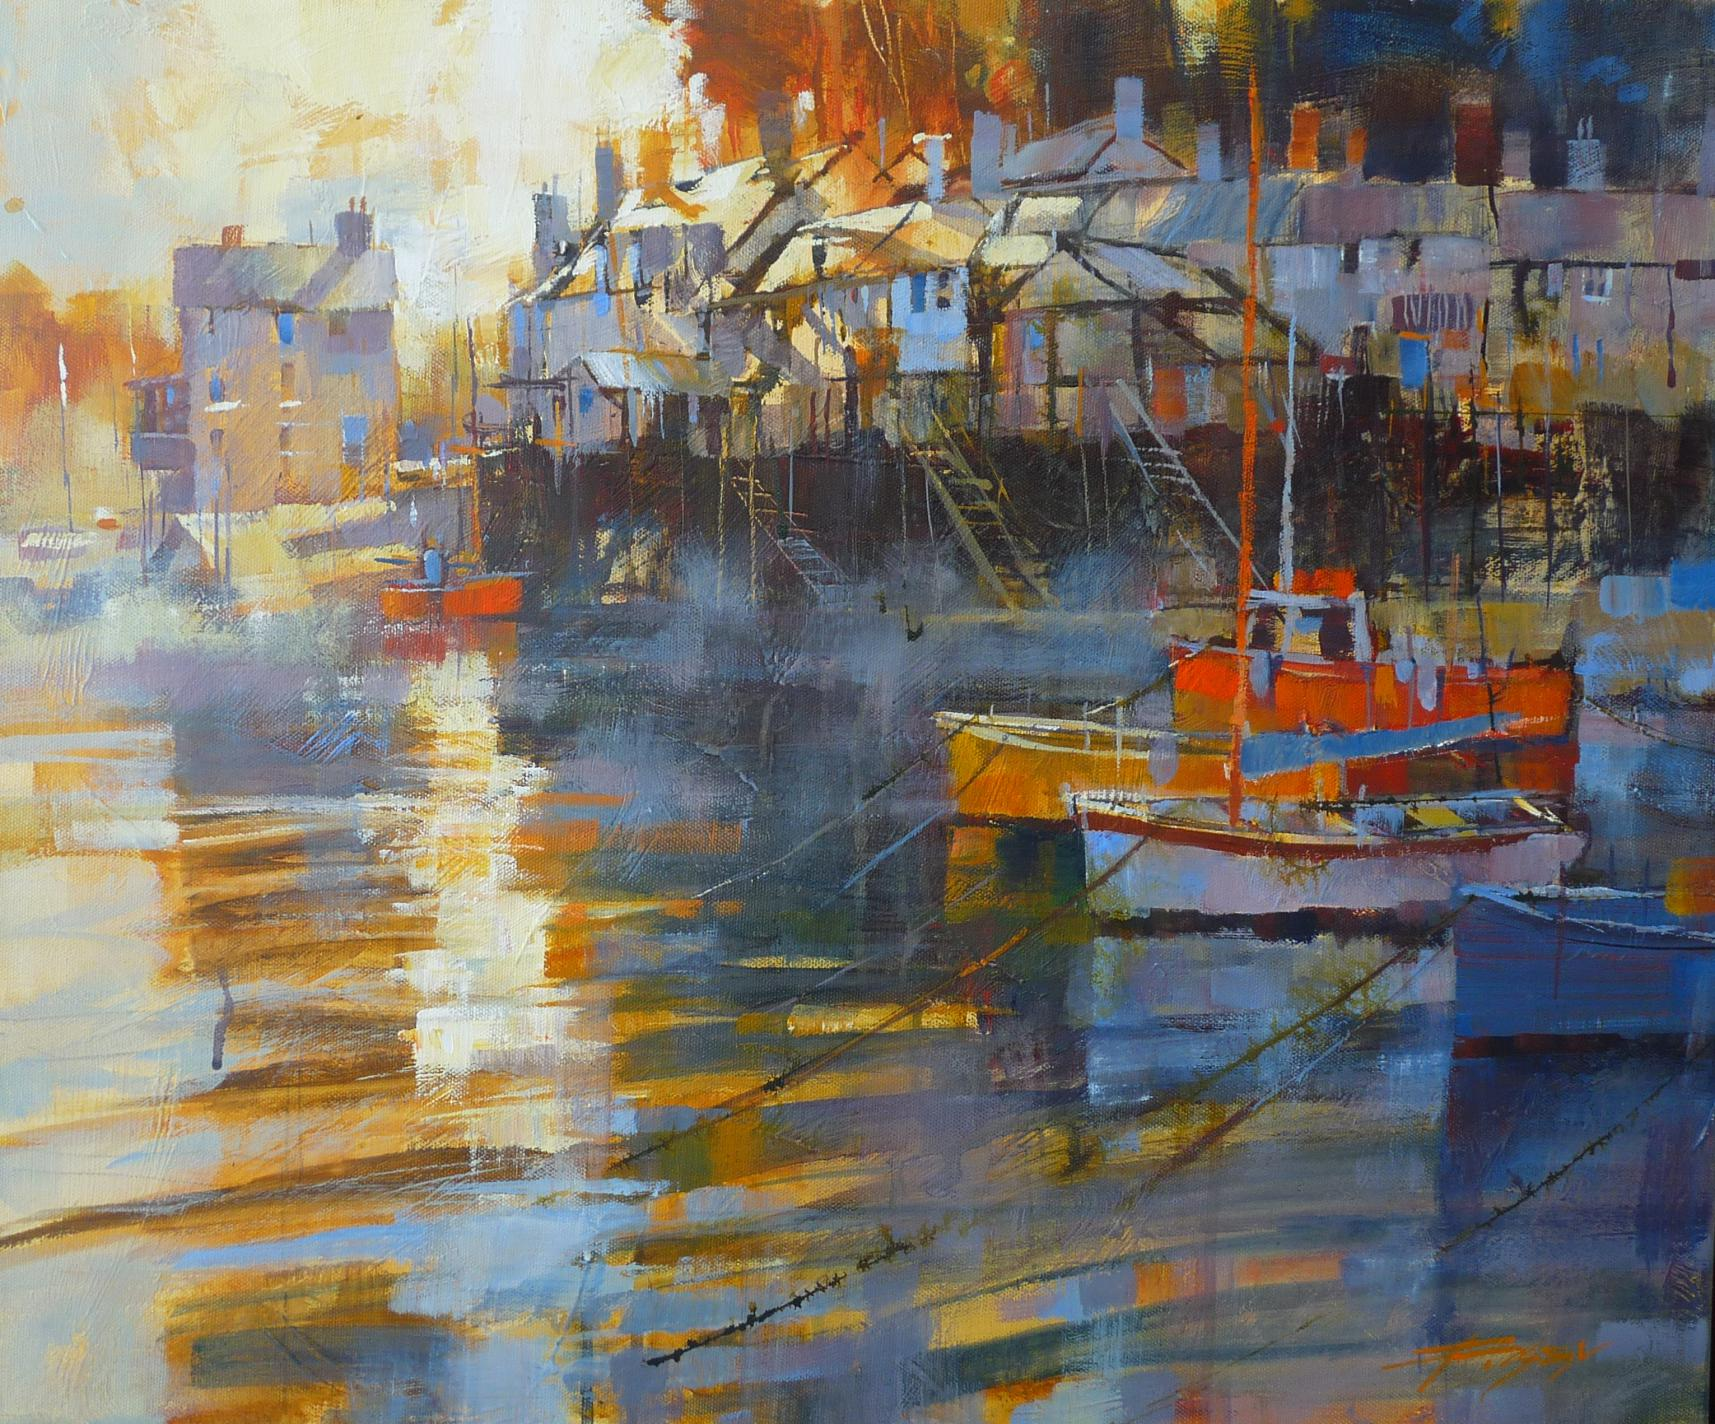 Moored in the mist, Fowey by Chris Forsey